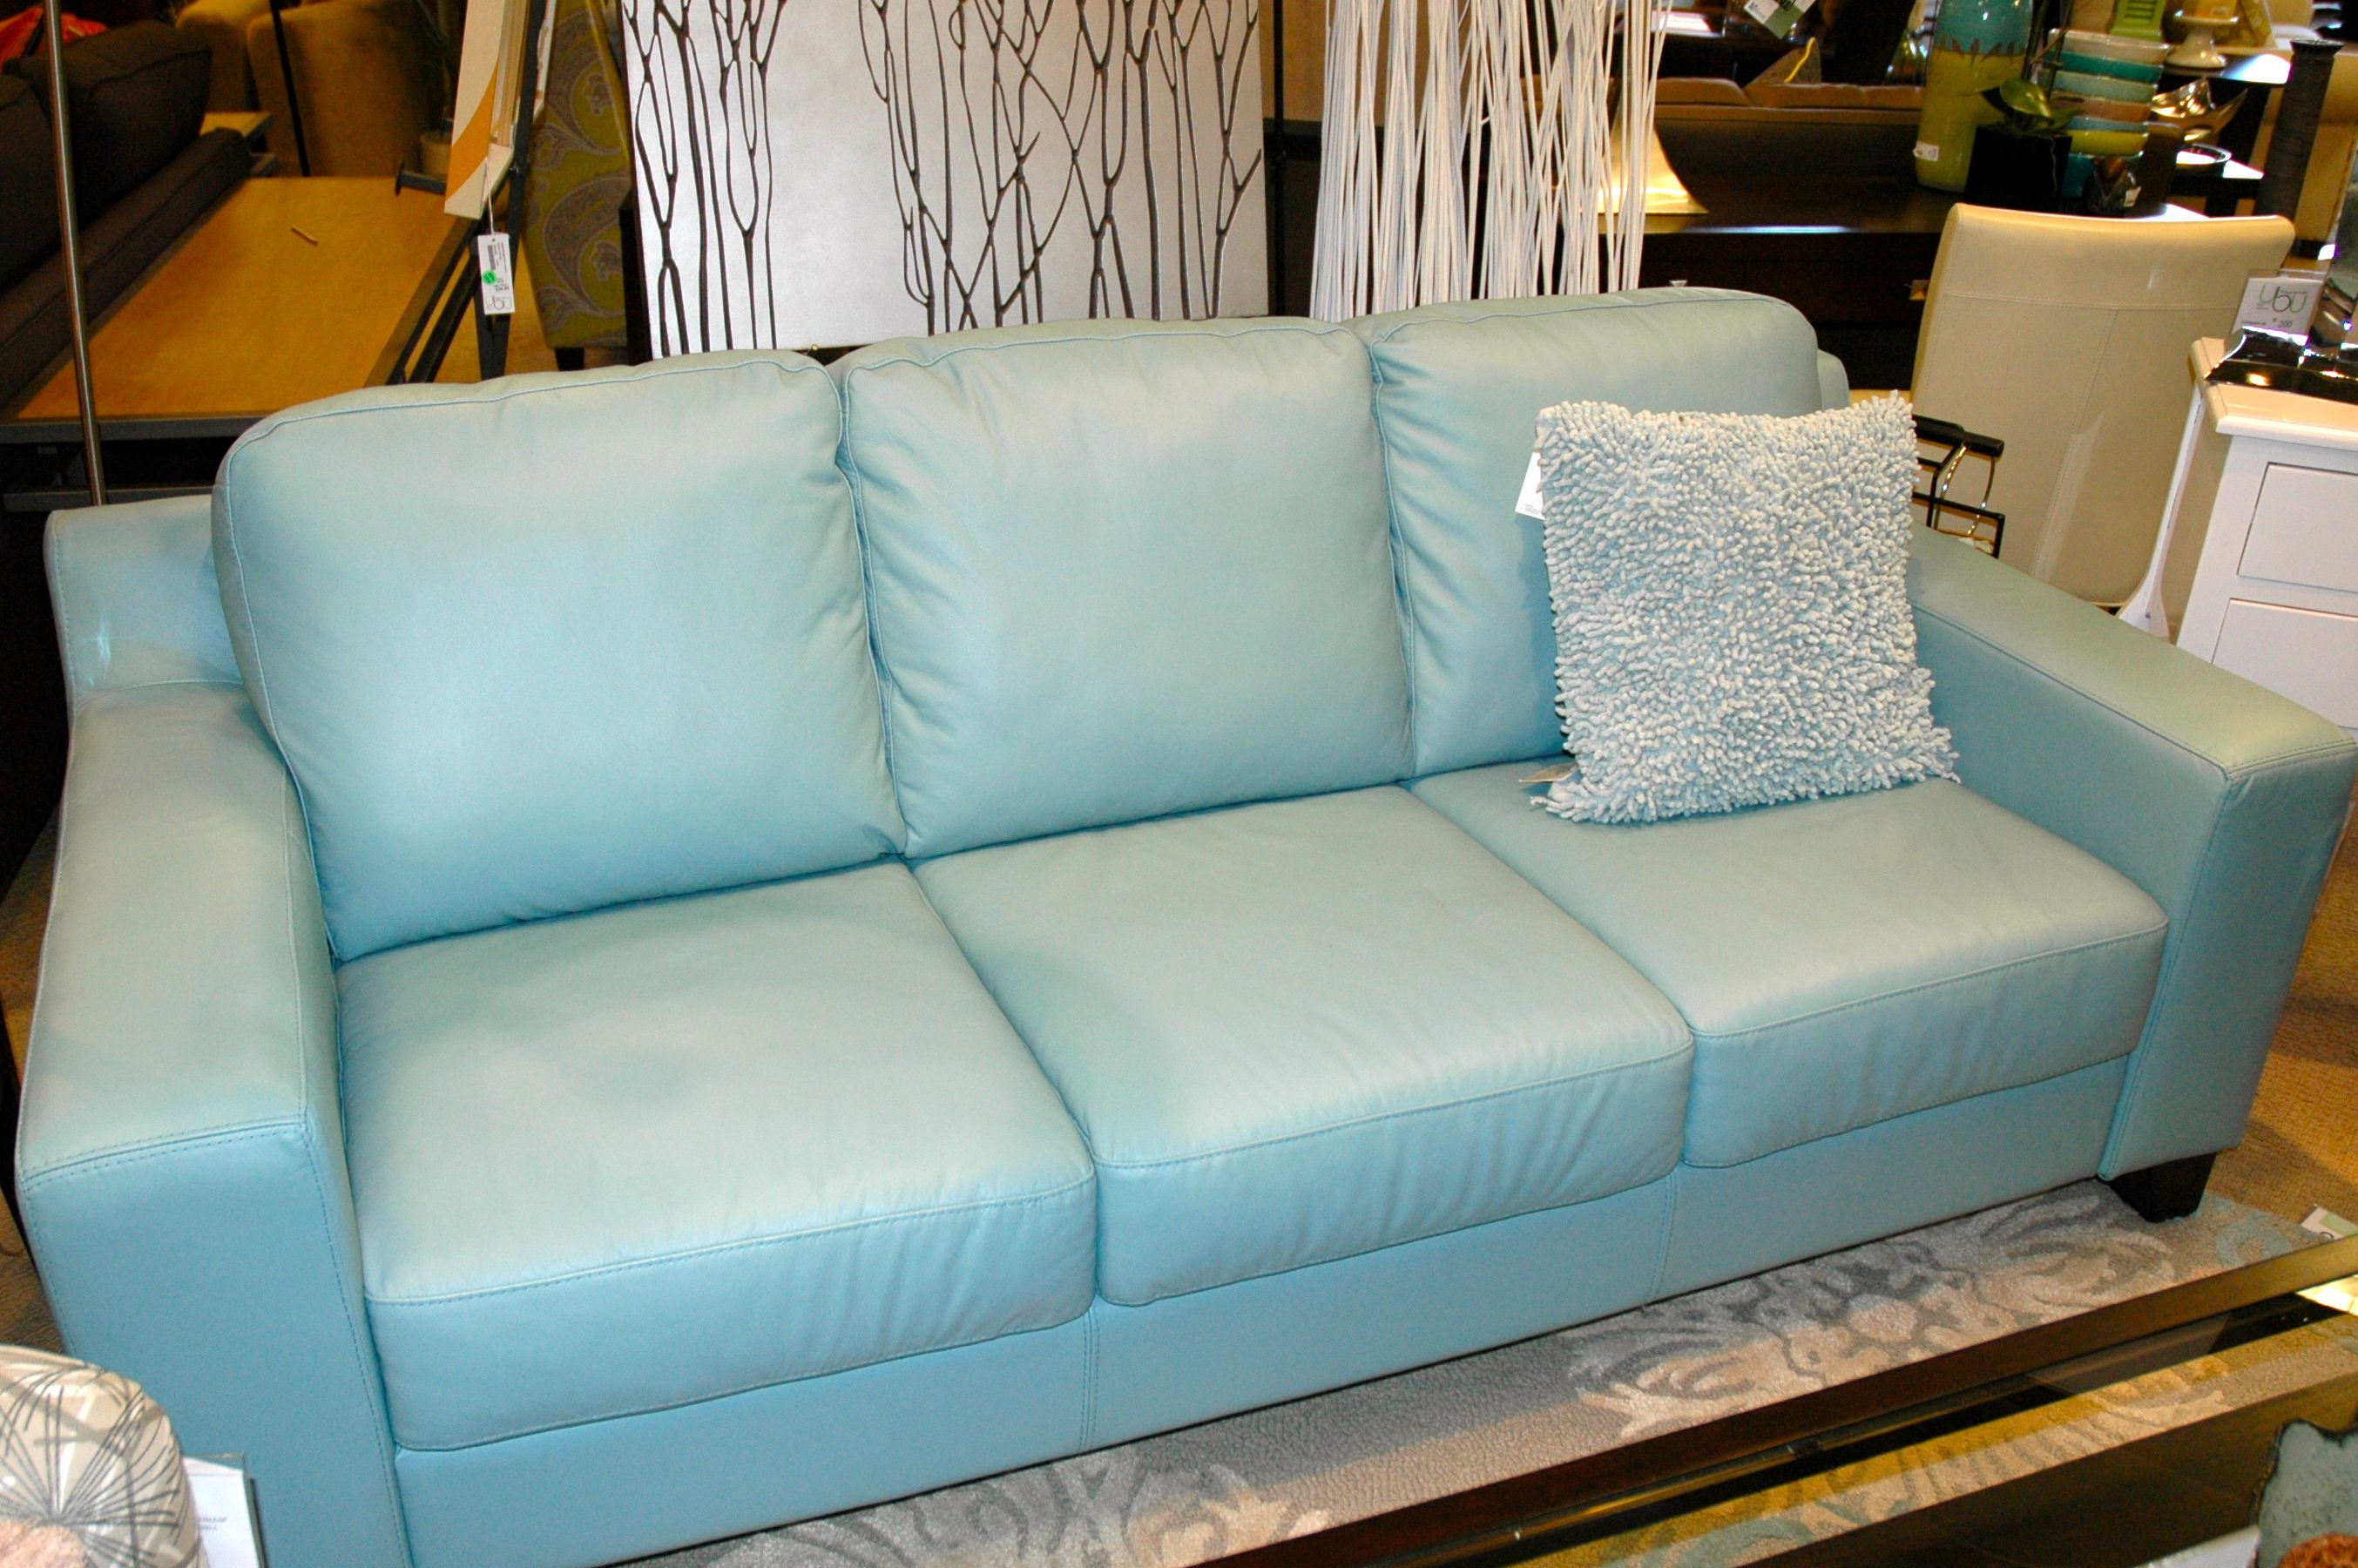 Trend Baby Blue Sofa Bed 55 For Sofas and Couches Ideas with Baby Blue Sofa Bed